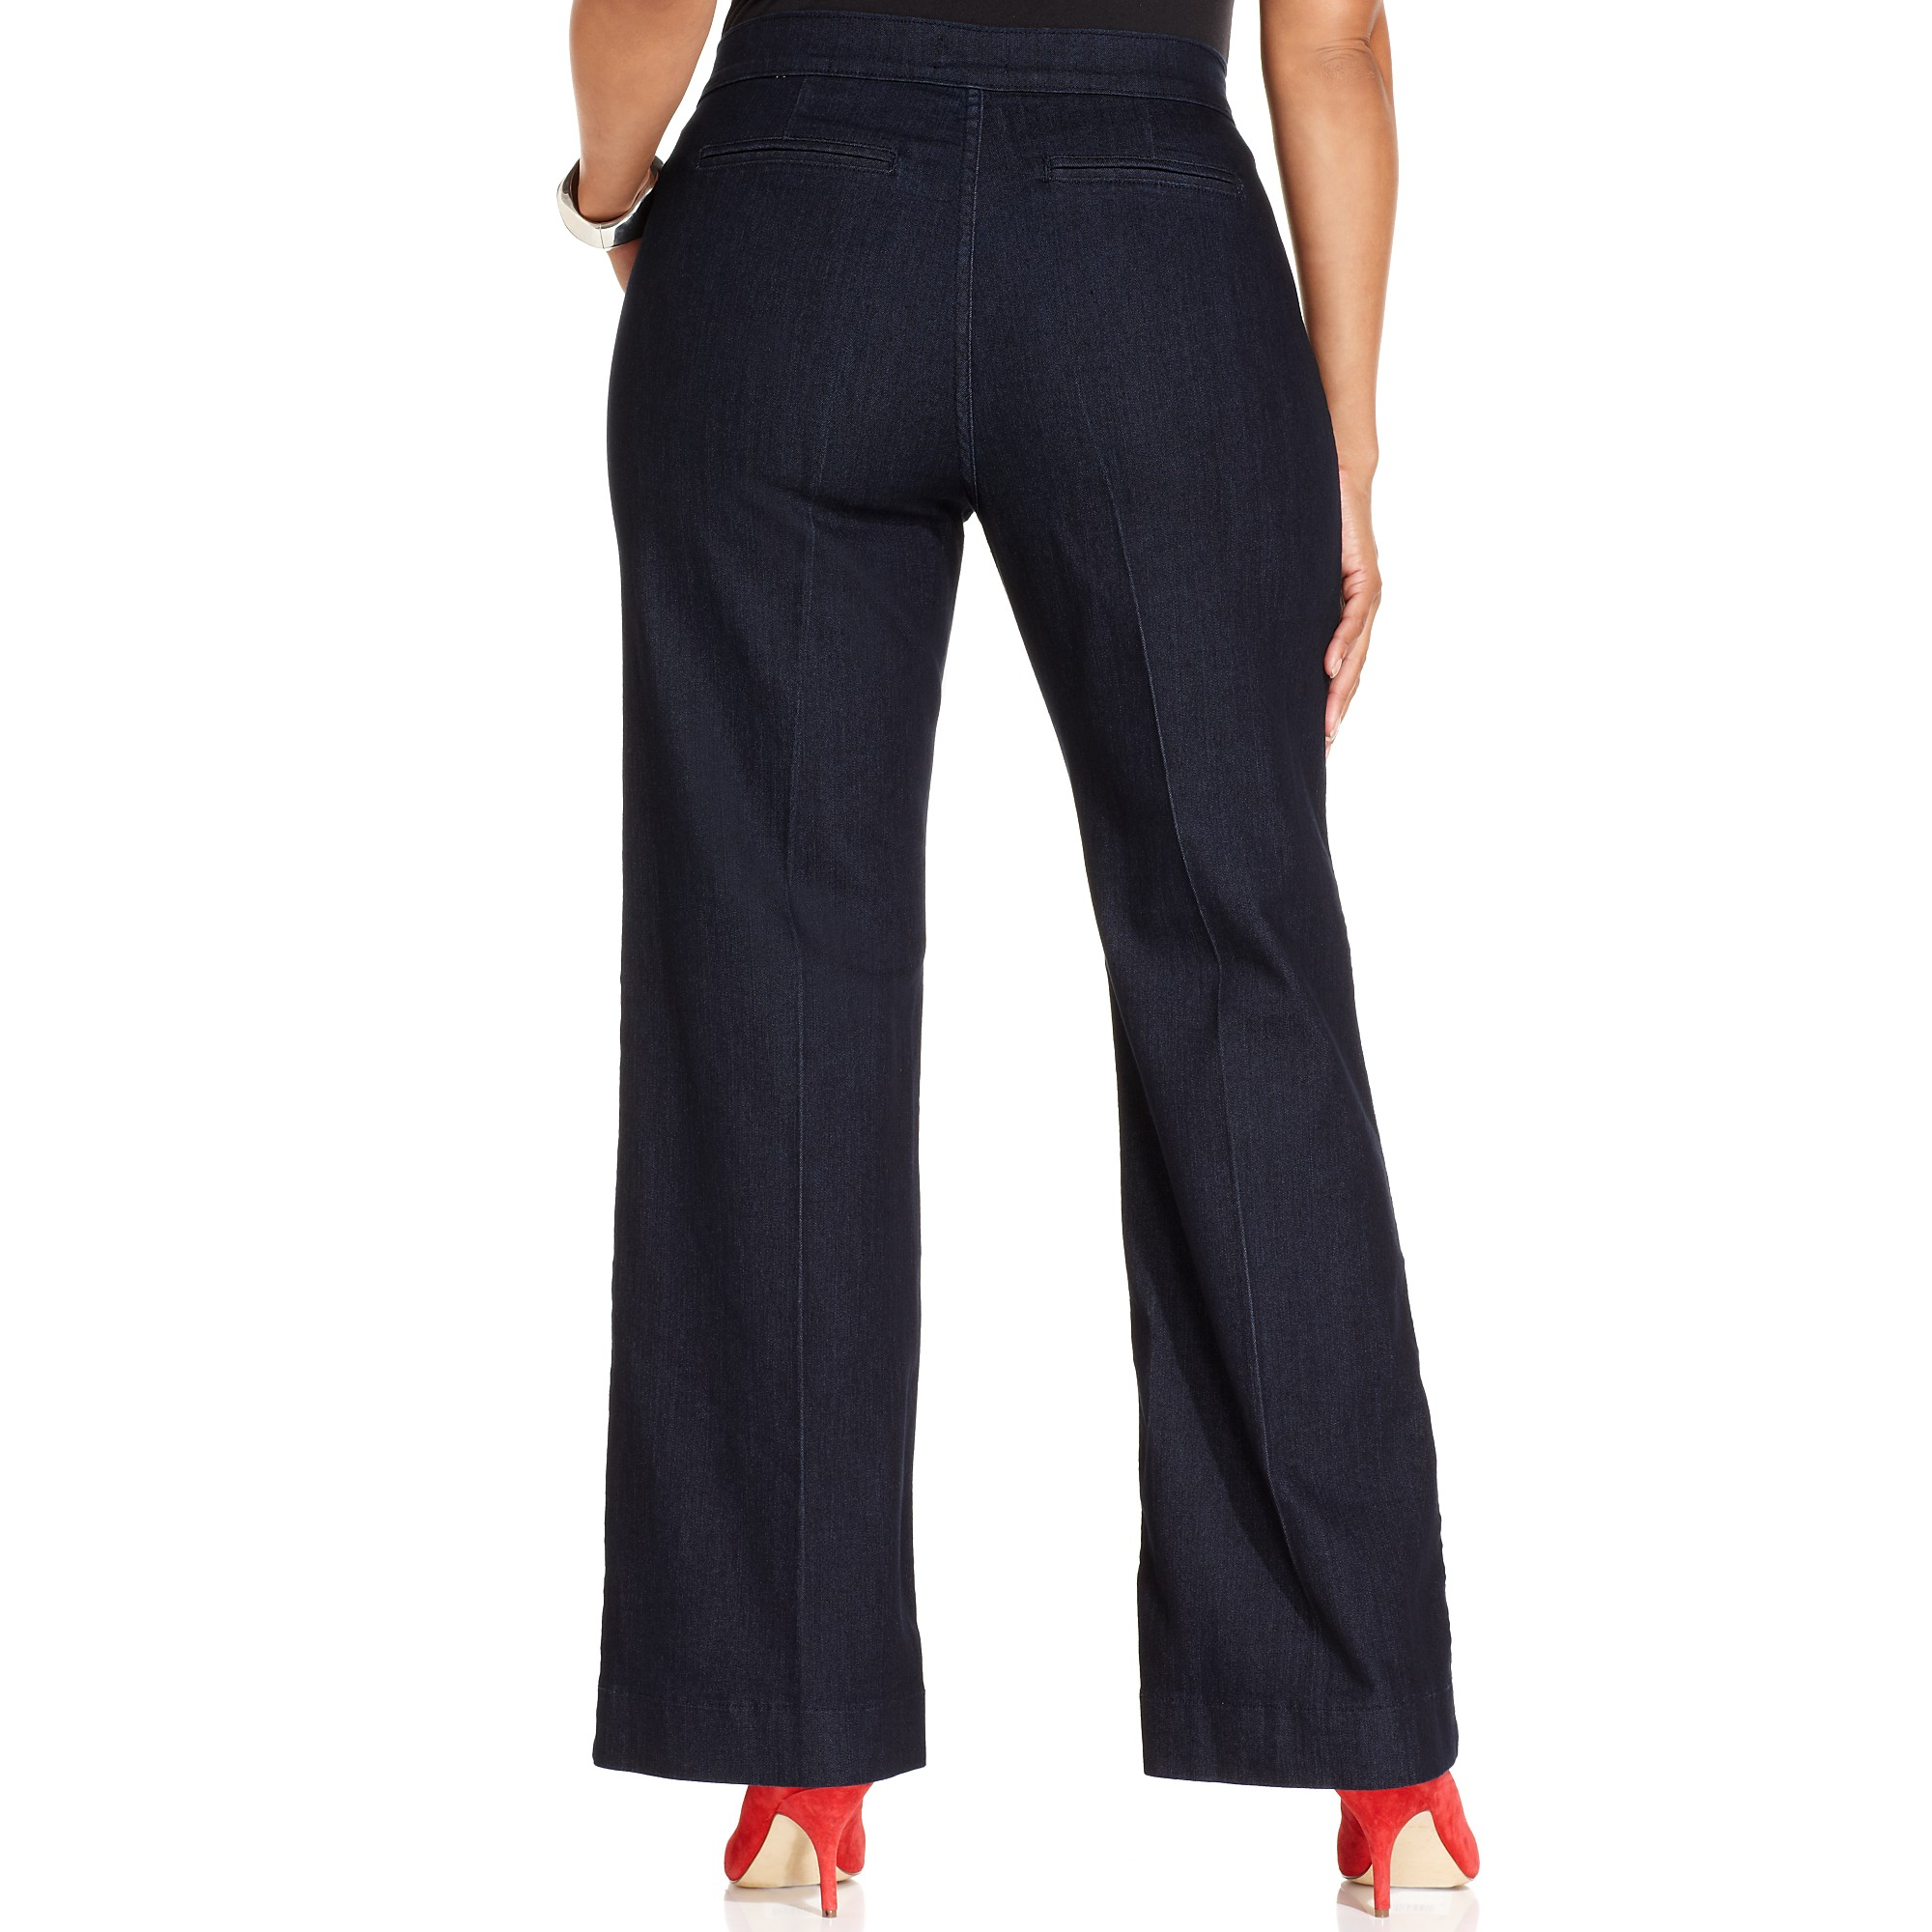 Women's Plus Size Denim Trouser $ 36 TwiinSisters. Women's High Rise Stretch Destroyed Ripped Color Skinny Pants Jeans Multi Styles. from $ 17 99 Prime. out of 5 stars Chic Classic Collection. Women's Plus Size Knit Pull-On Pant. from $ 19 99 Prime. out of 5 stars Pervobs Women Pants.